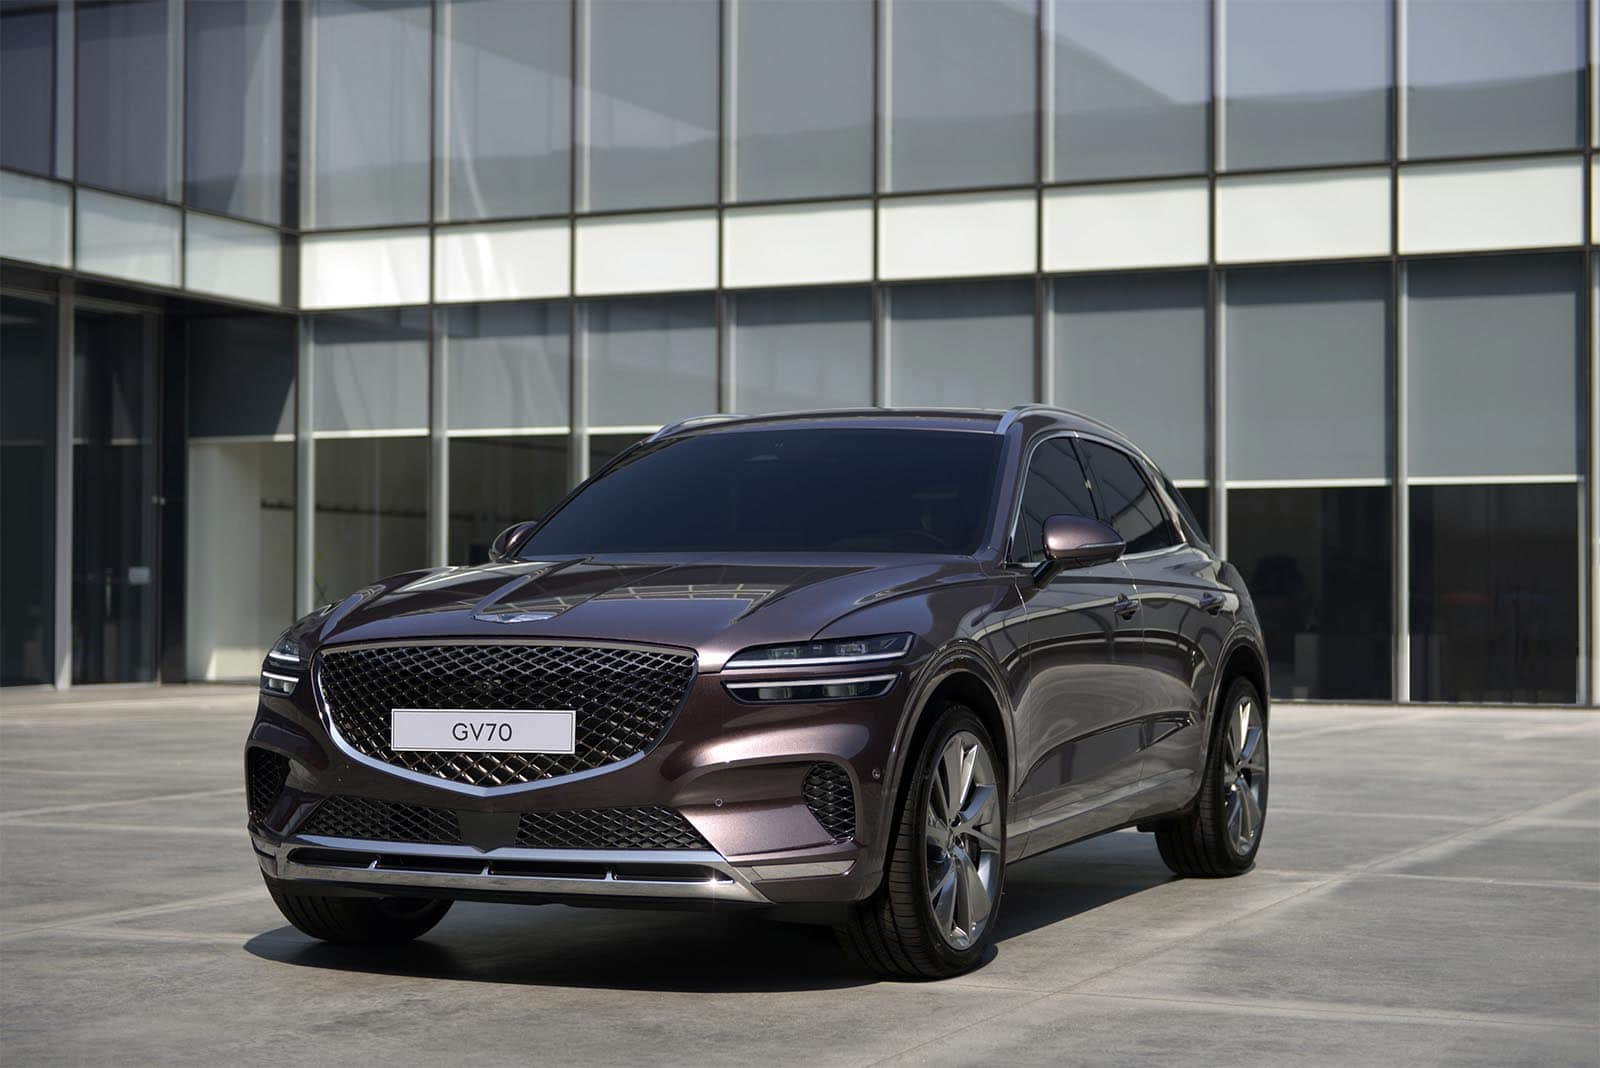 Genesis Previews Second SUV, The Much-Anticipated GV70